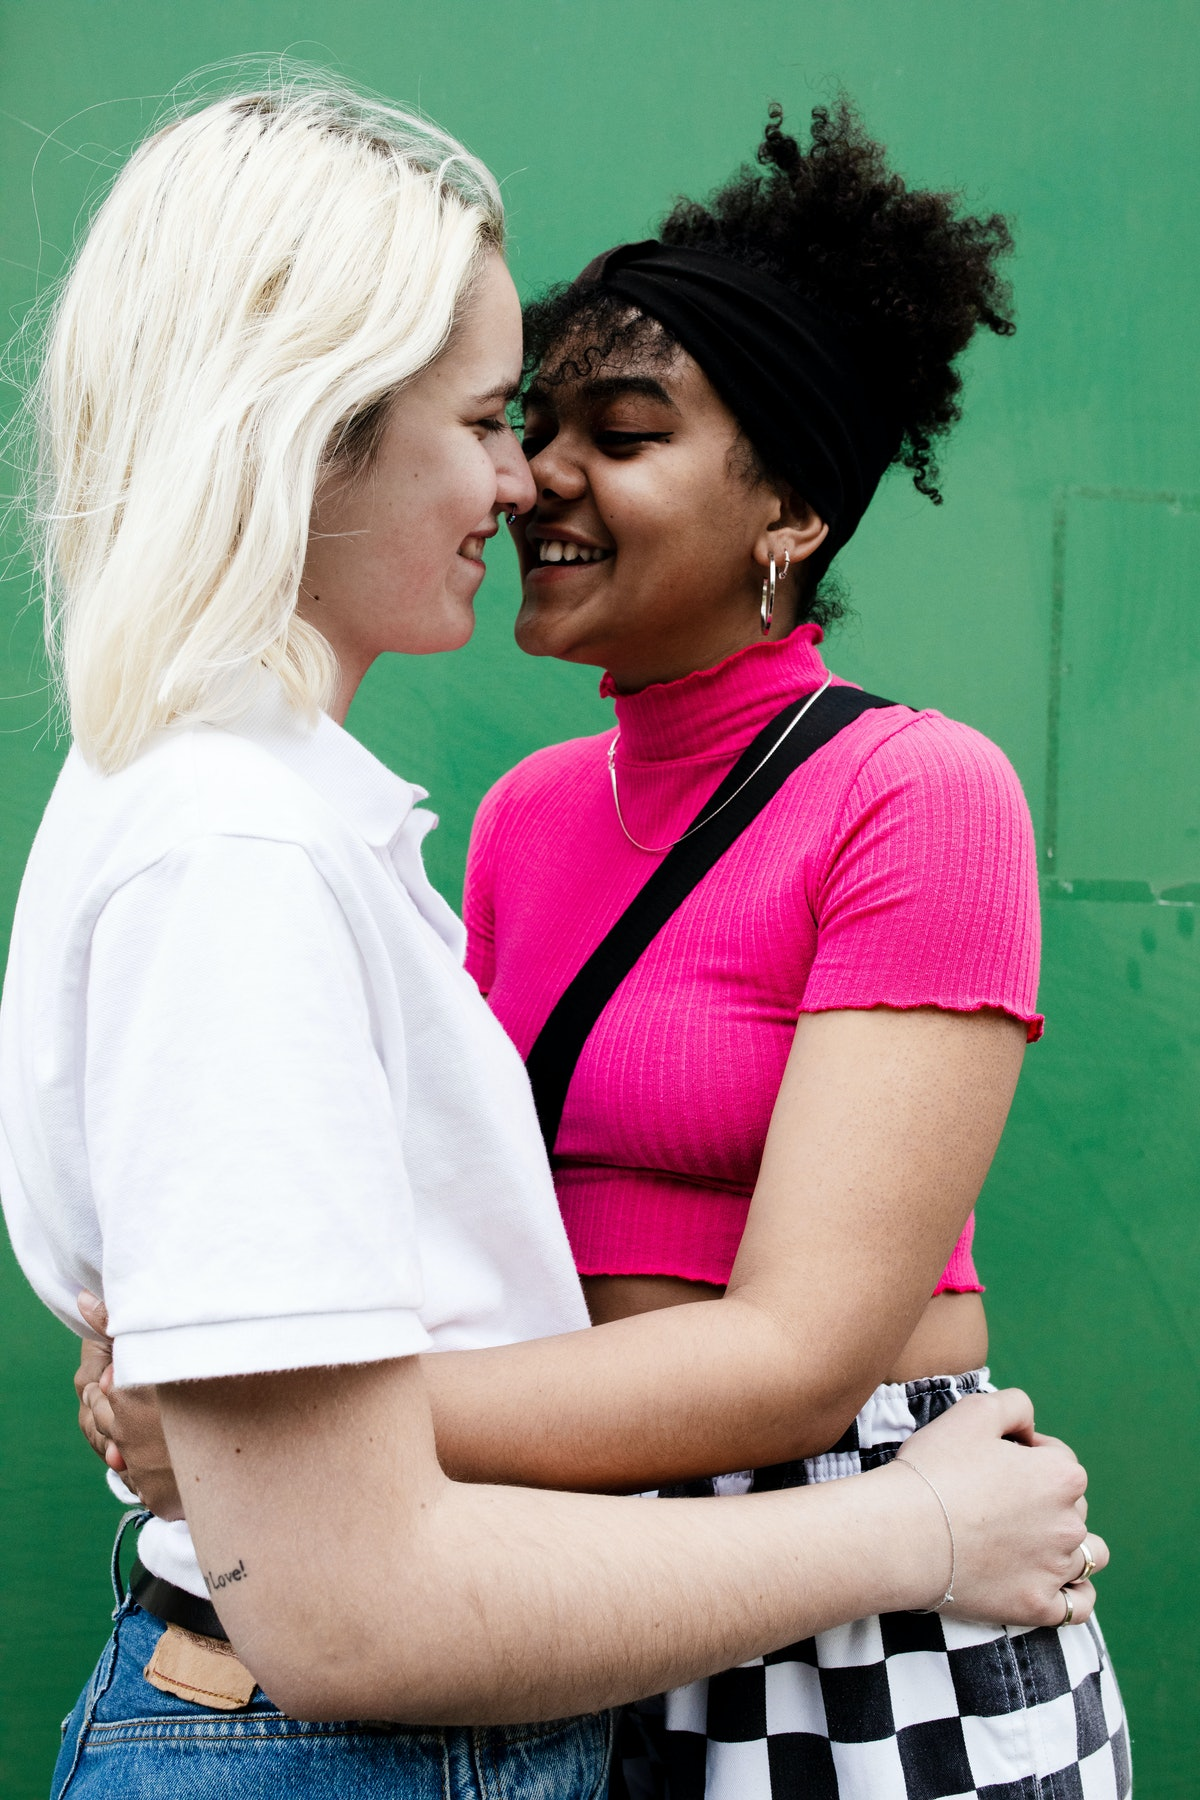 Young women close to kissing, learning how to get turned on via their Eros sign.